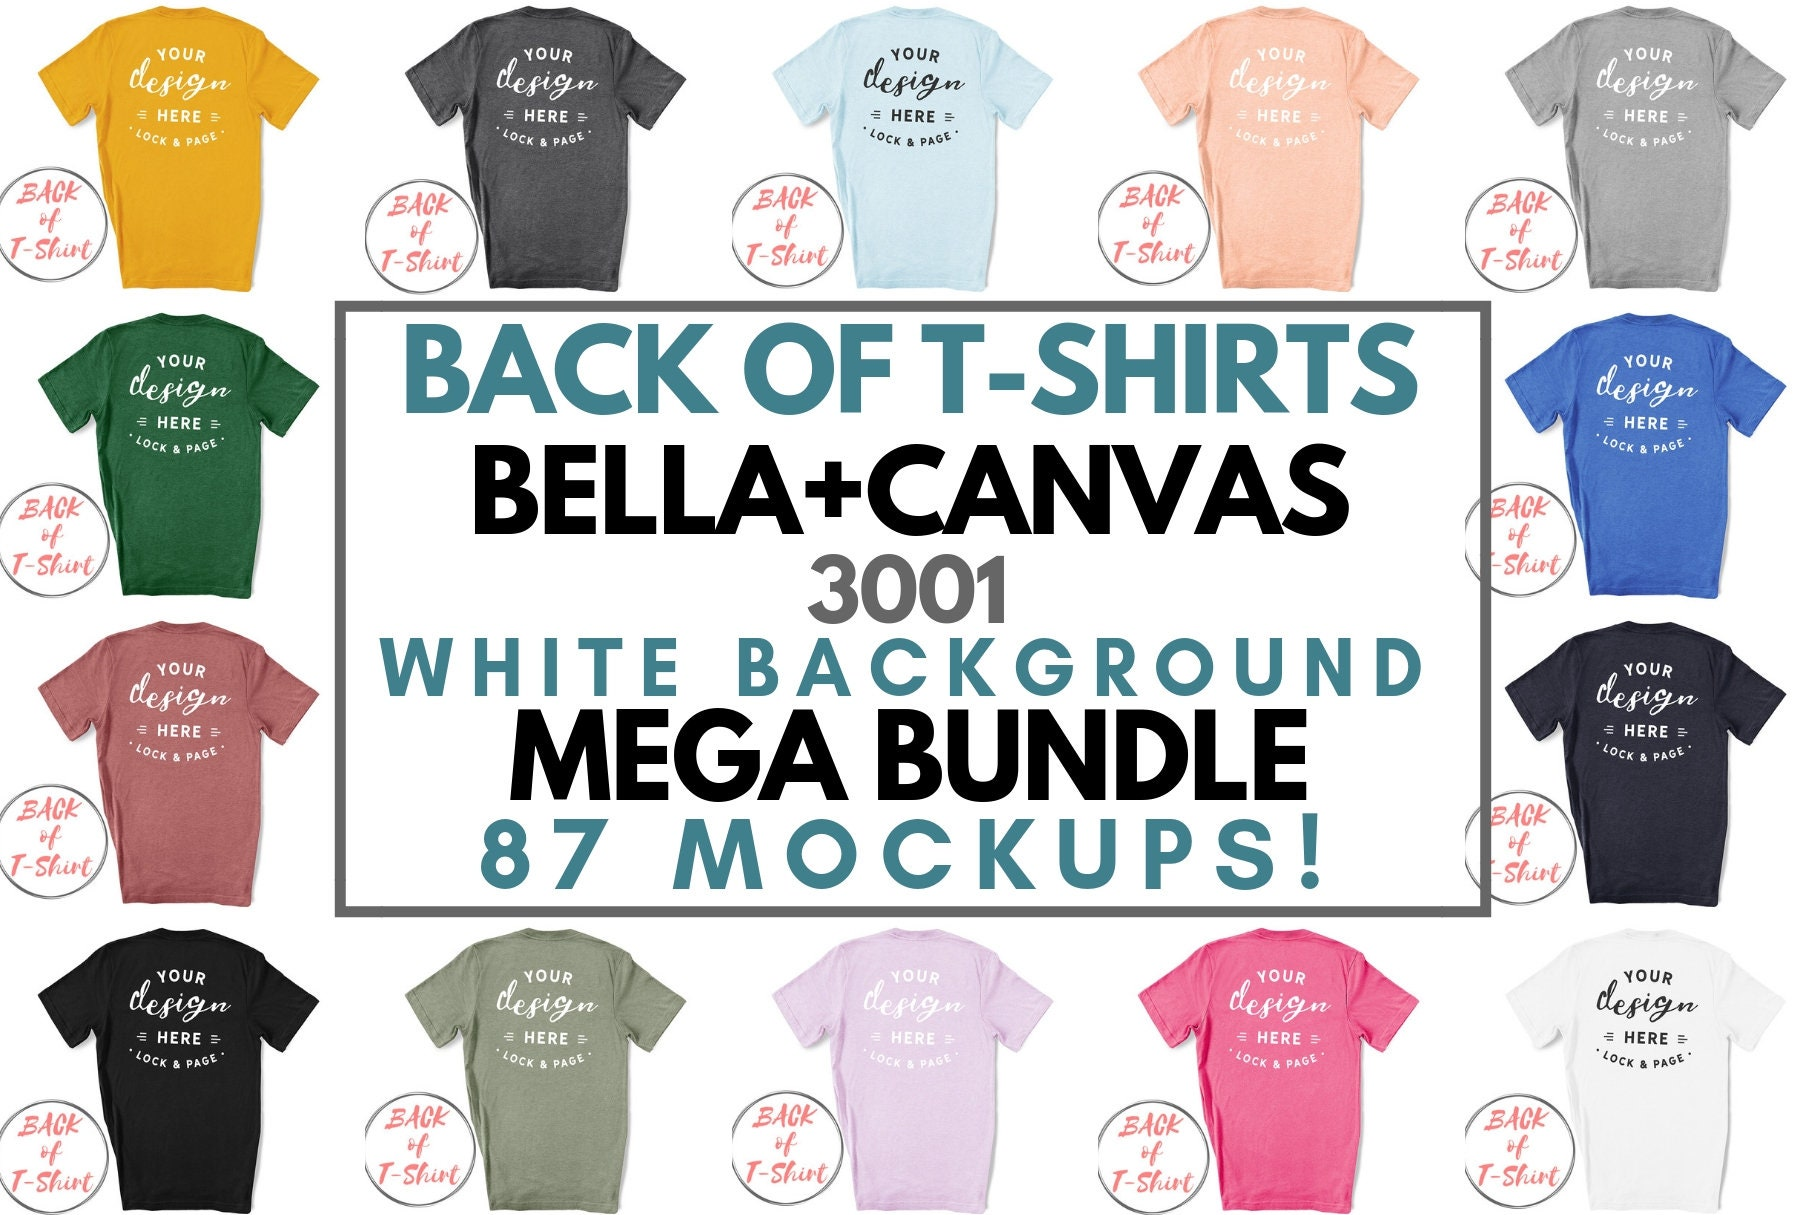 Back Of T-Shirt Bella Canvas 3001 Mockup Mega Bundle All Colors On Plain  White Background Clean Simple Clear Backdrop T Shirt Backs Mockups